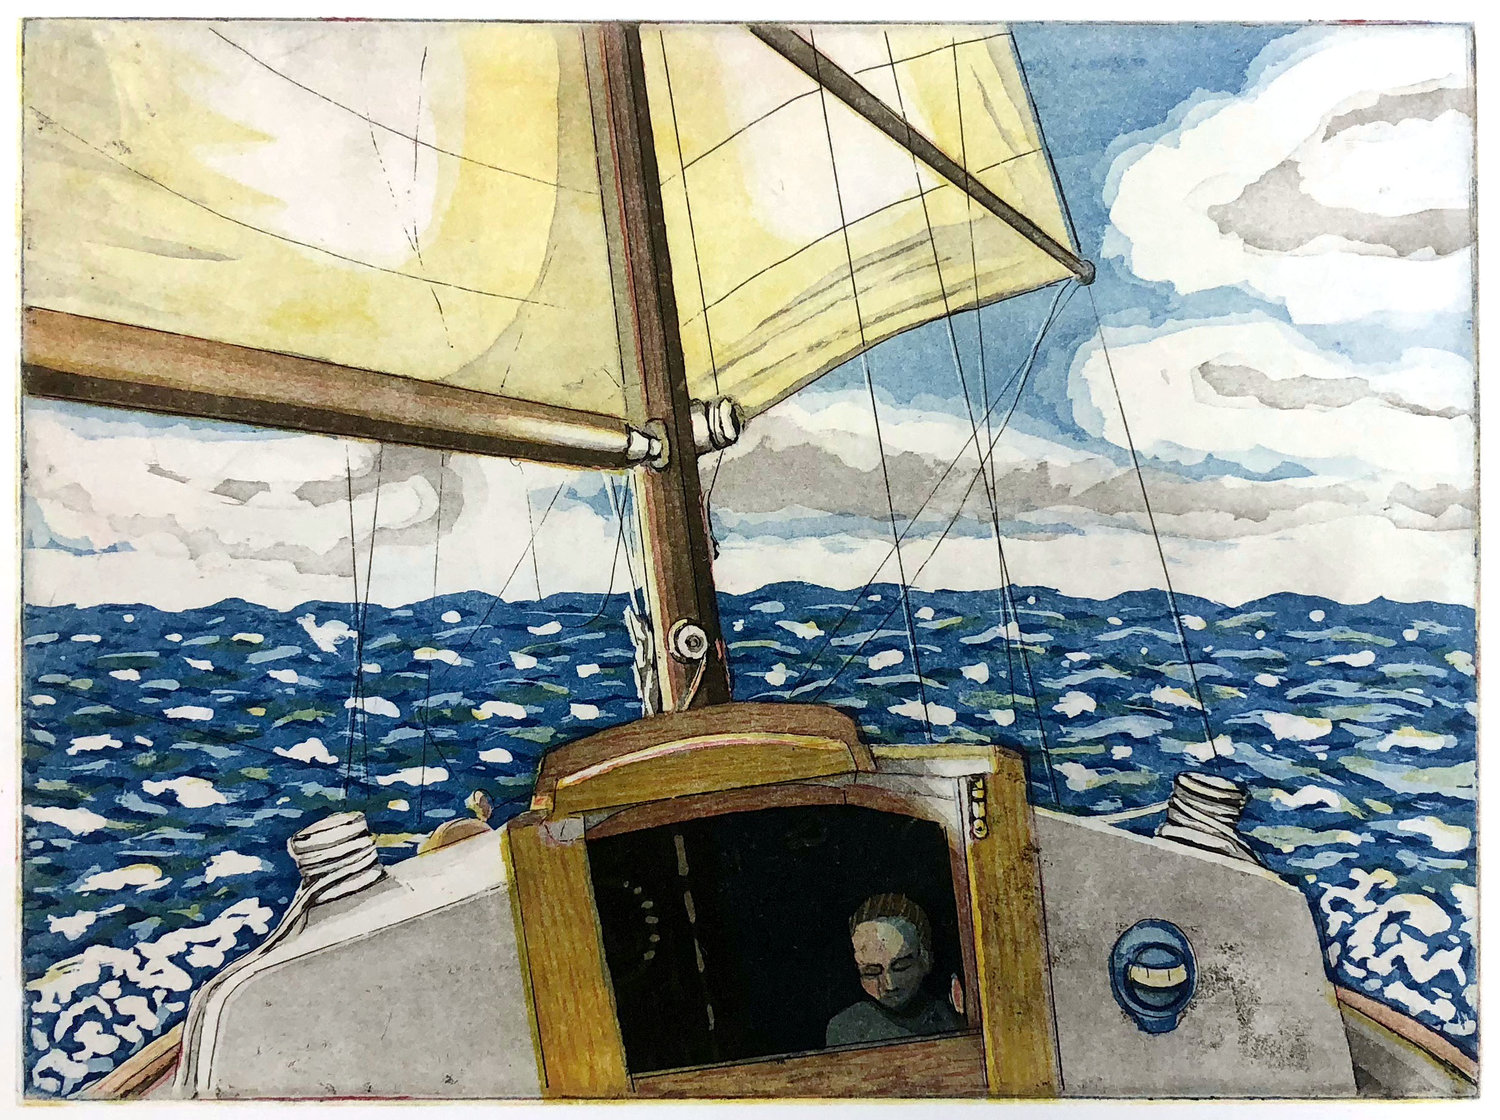 Sailboat at sea with lone person in cabin. Blue ocean, yellow sail, clouds.